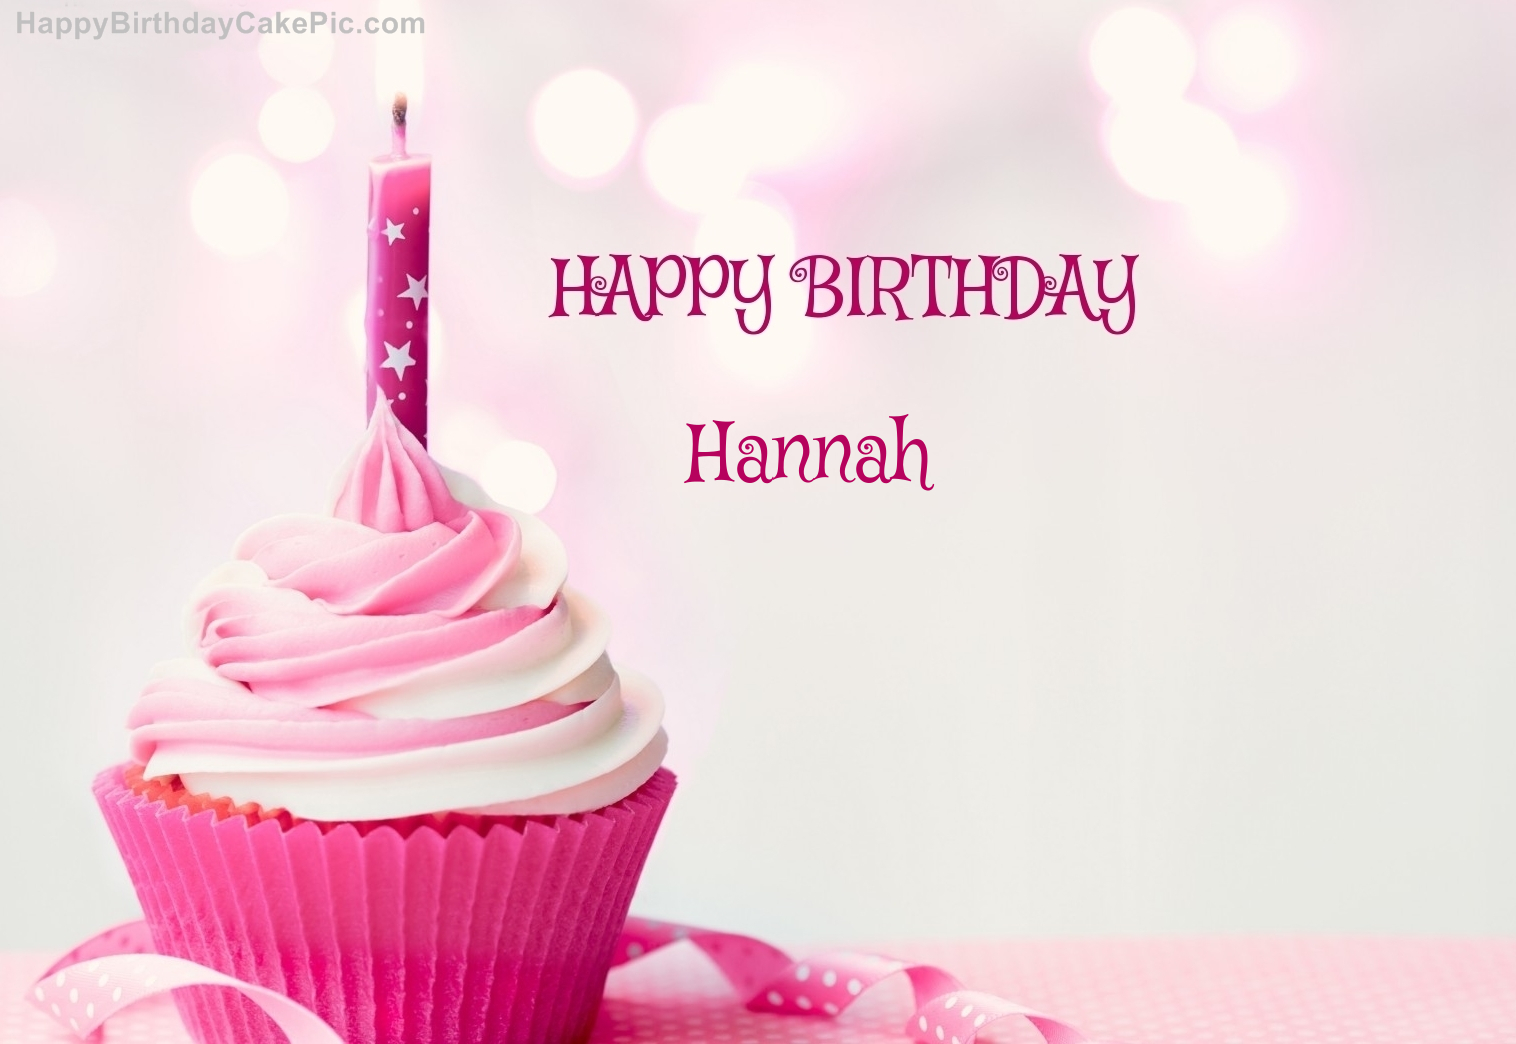 ️ Happy Birthday Cupcake Candle Pink Cake For Hannah